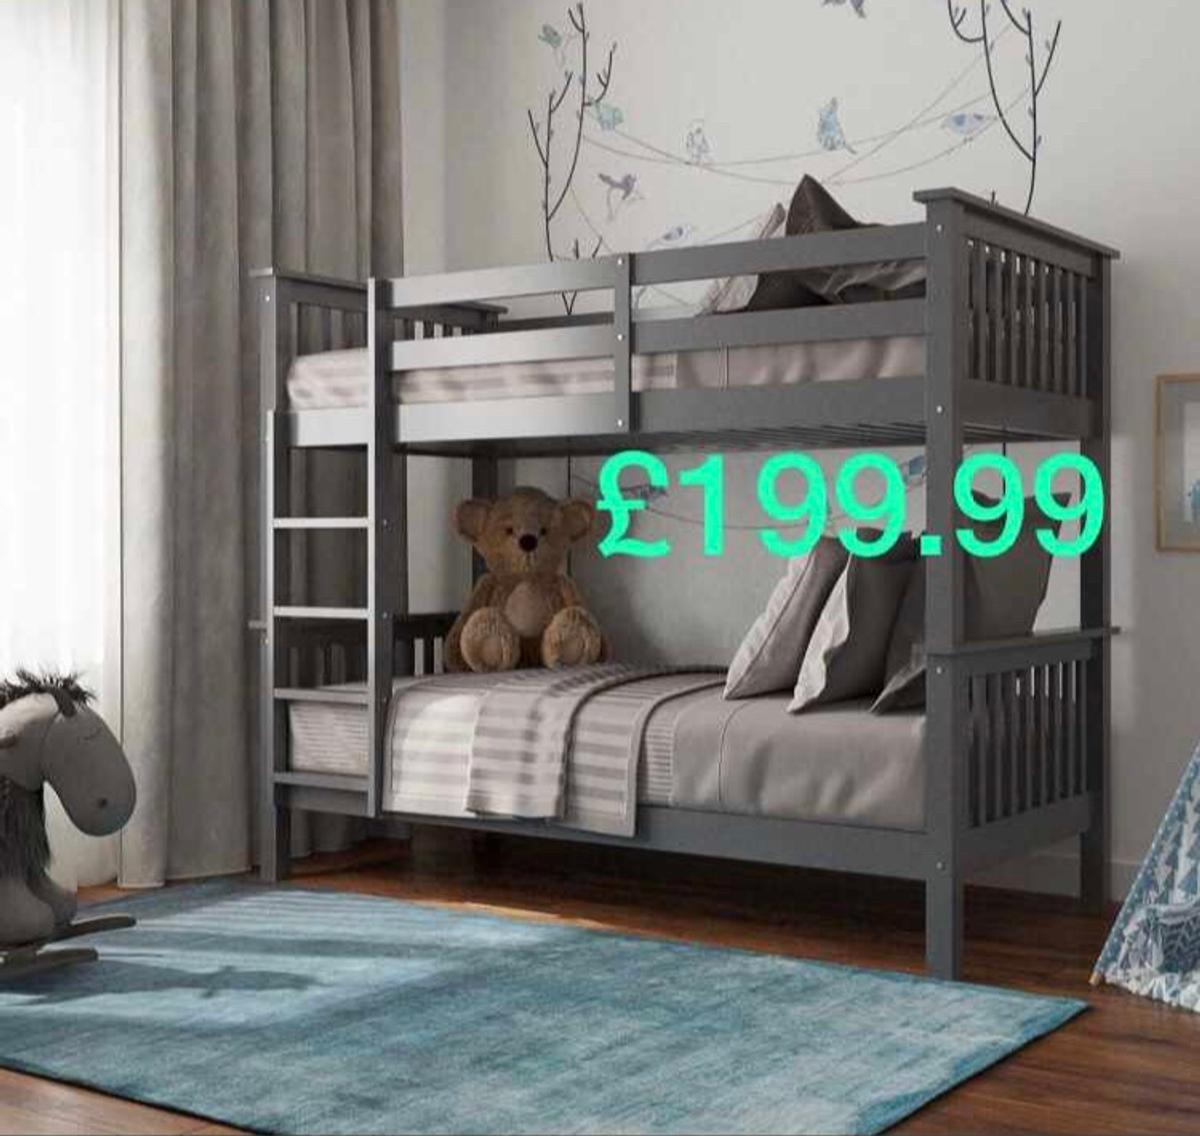 Zoom Bunk Bed In Grey Or White In Wf16 Heckmondwike For 199 00 For Sale Shpock